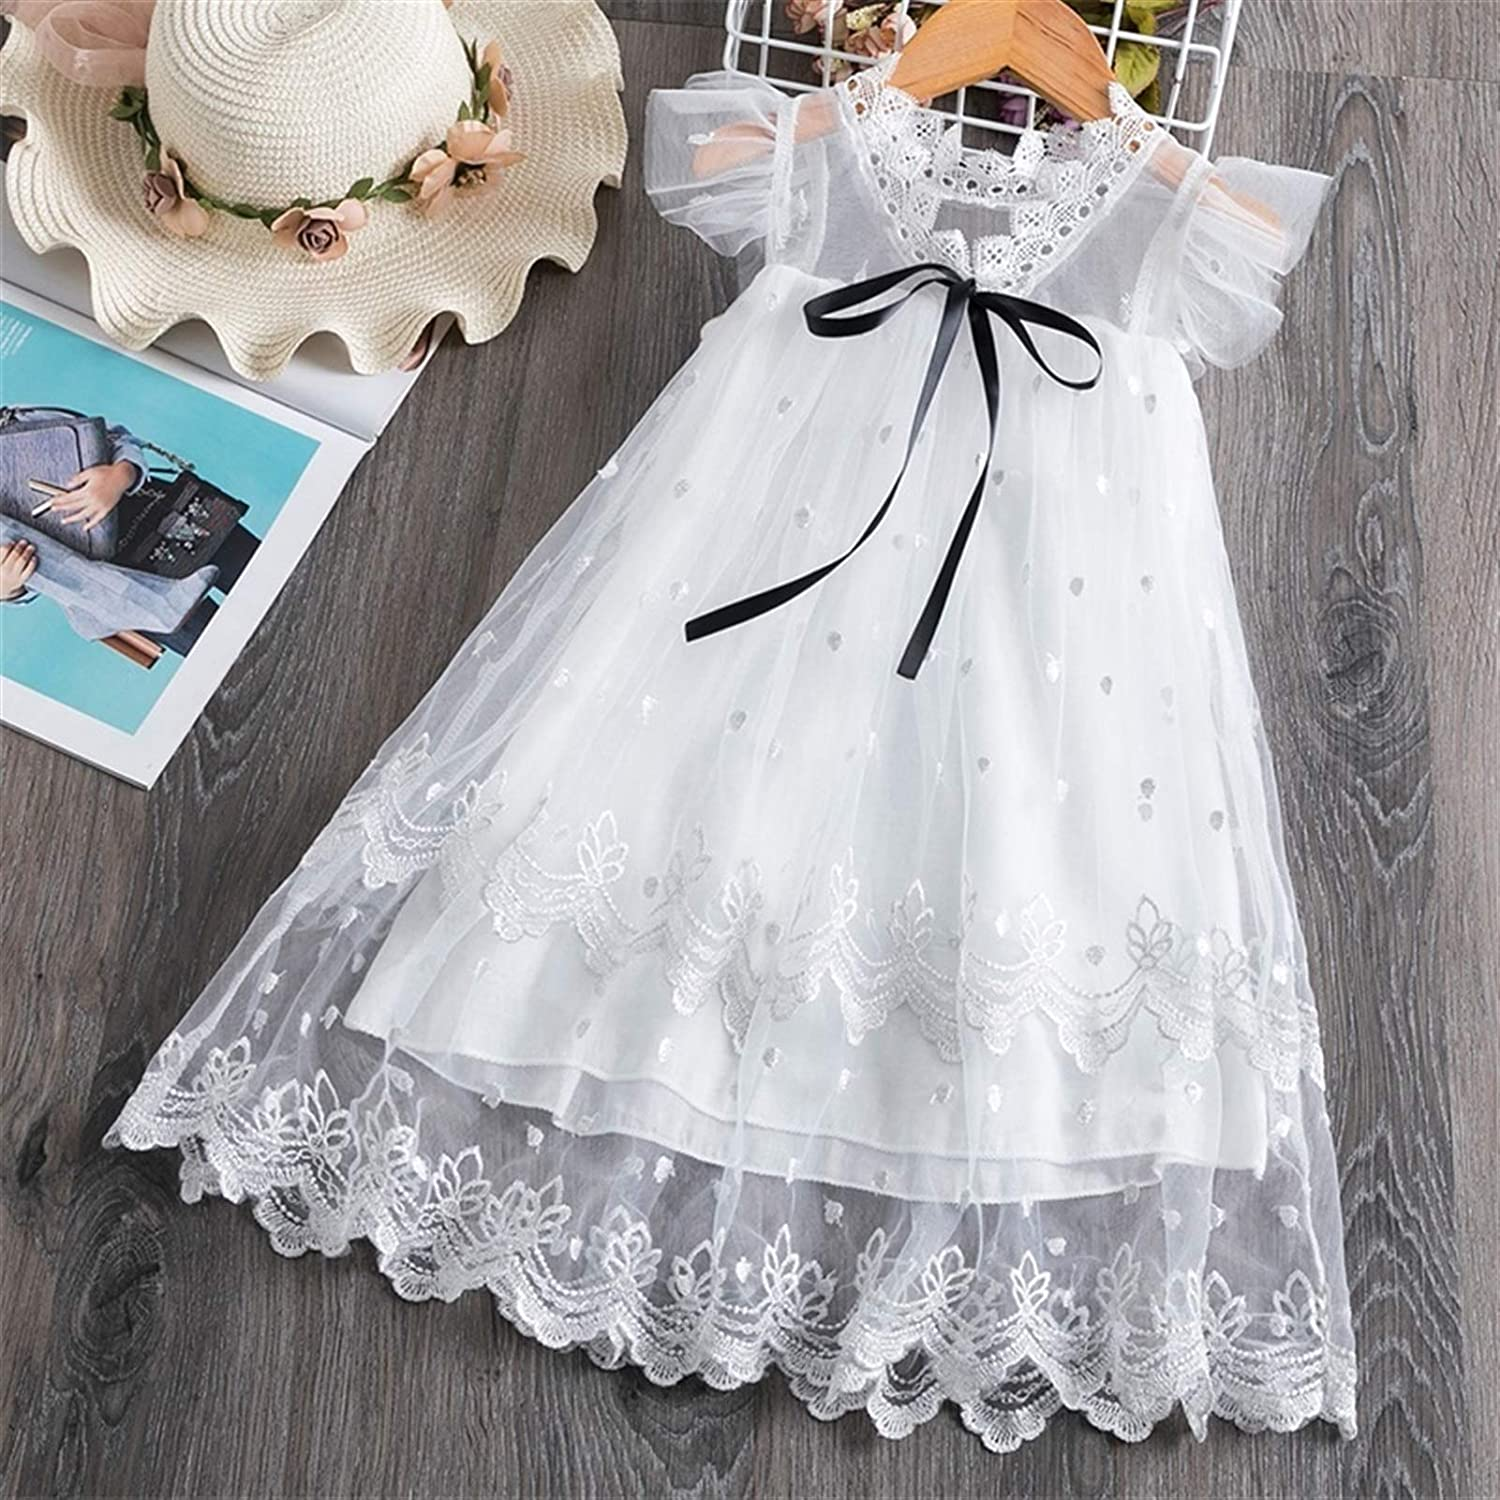 Comfortable and Exquisite Dress Princess Girls Dress Girls Clothes Children Clothing Summer Party Tutu Kids Dresses for Girls Toddler Girls Casual Dress 3 8T (Color : Style 8 White, Kid Size : 4T)